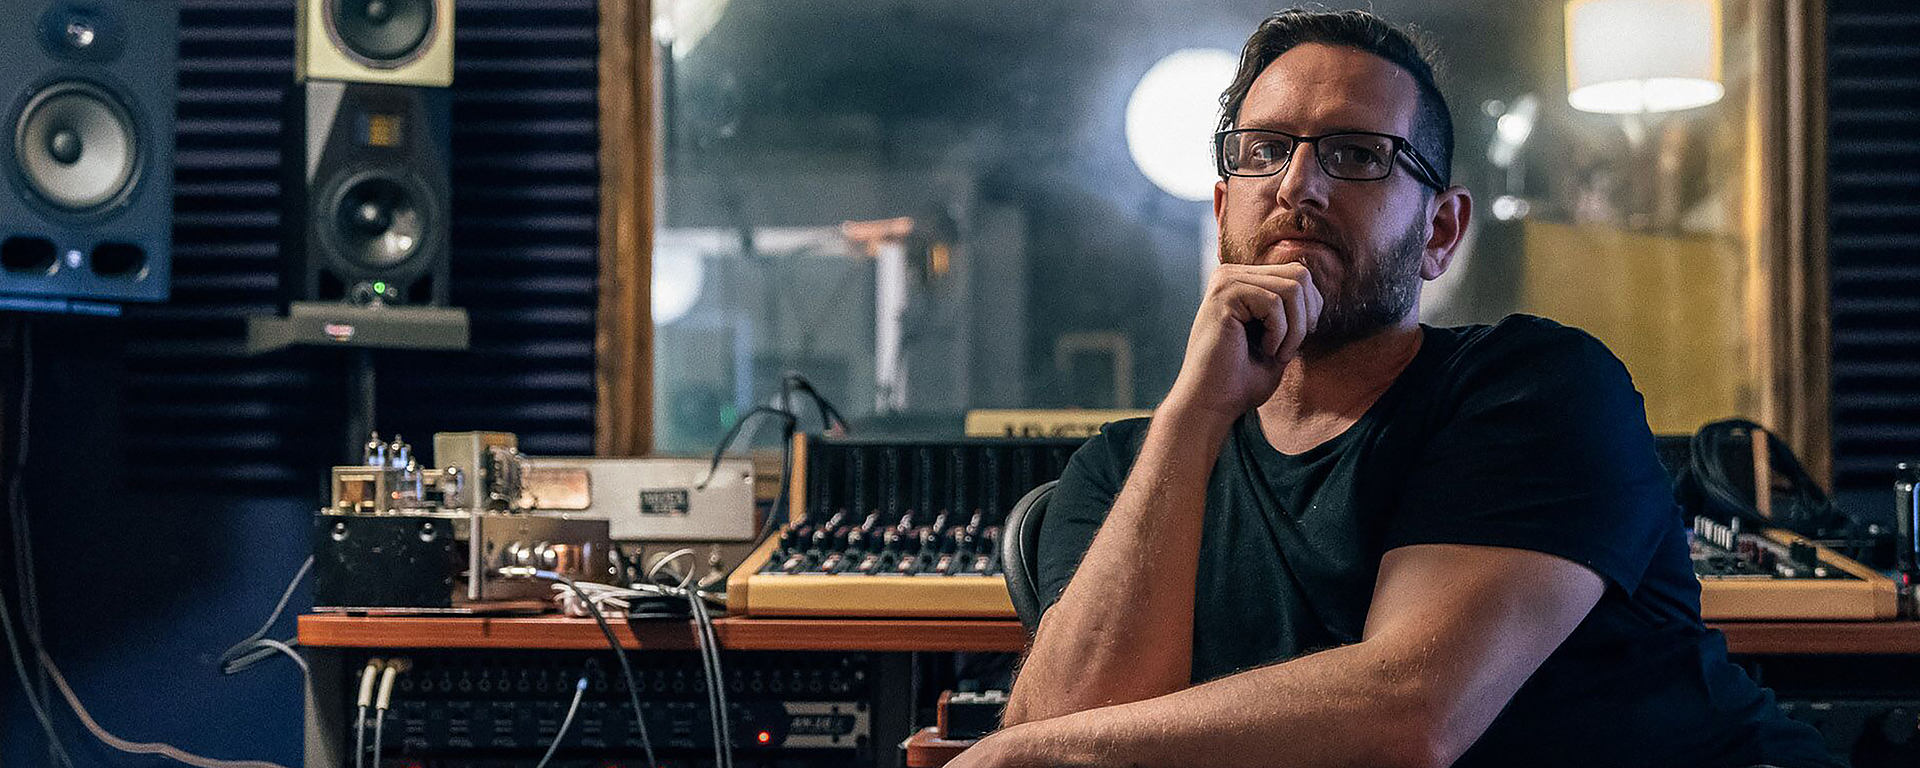 Matt Parmenter uses the LCT 840 in Ice Cream Factory Studios [Photo © Alex Masi - Swng Productions]